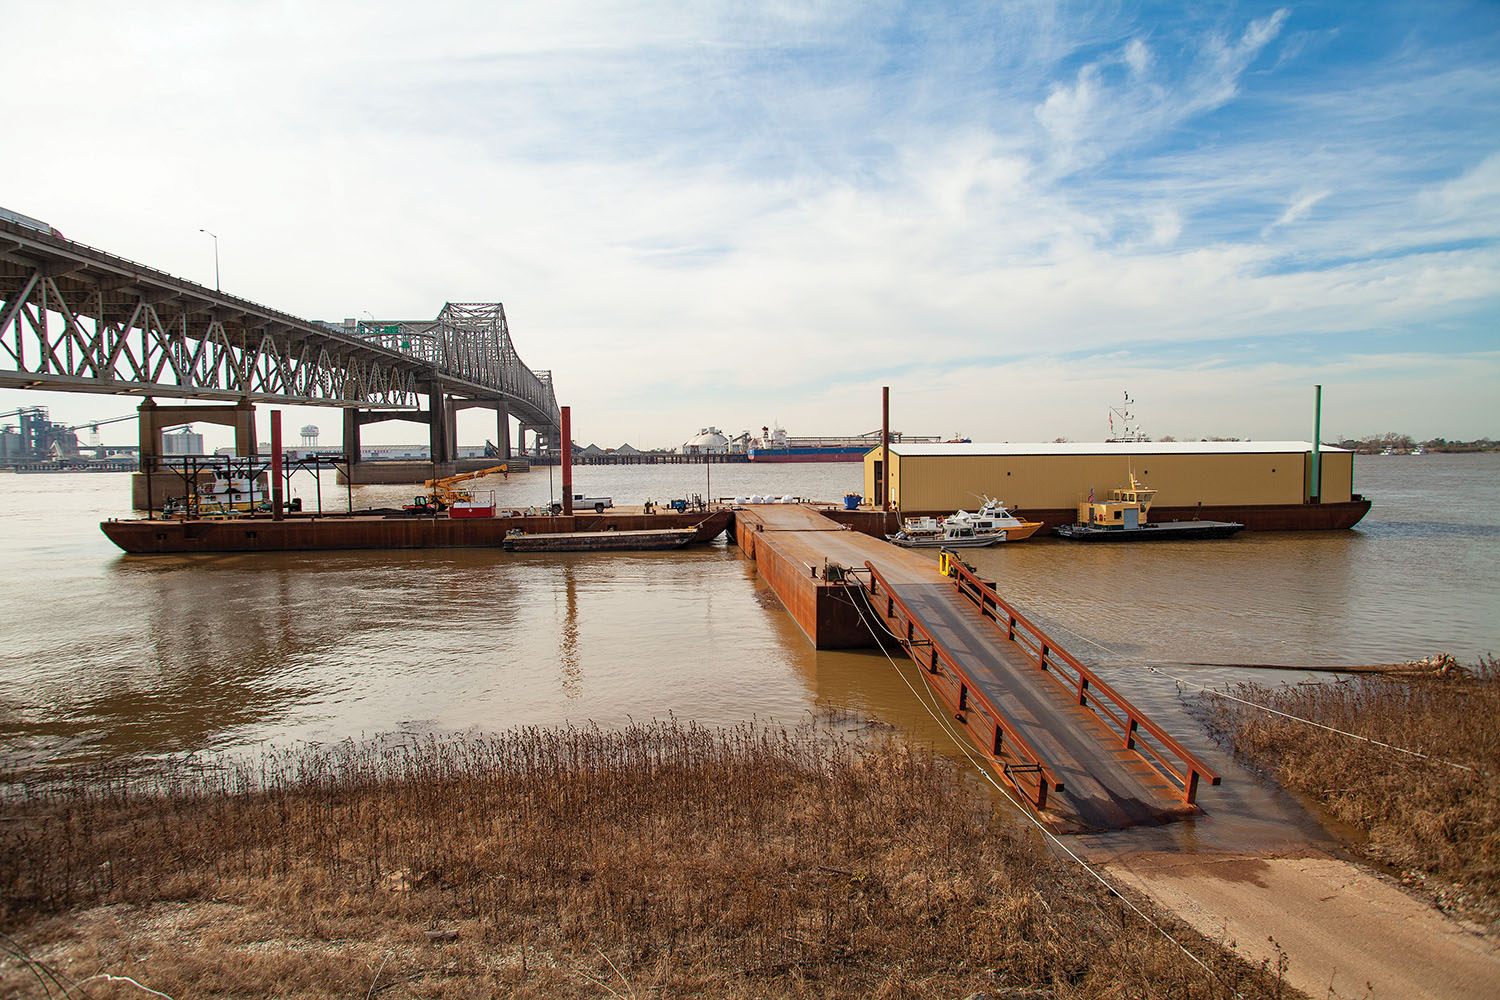 Shamrock Marine's new dock in Baton Rouge, La., provides shore-to-dock access in any river stage and offers crew change, mooring, supply storage and receiving services for marine companies. (Photo by Frank McCormack)